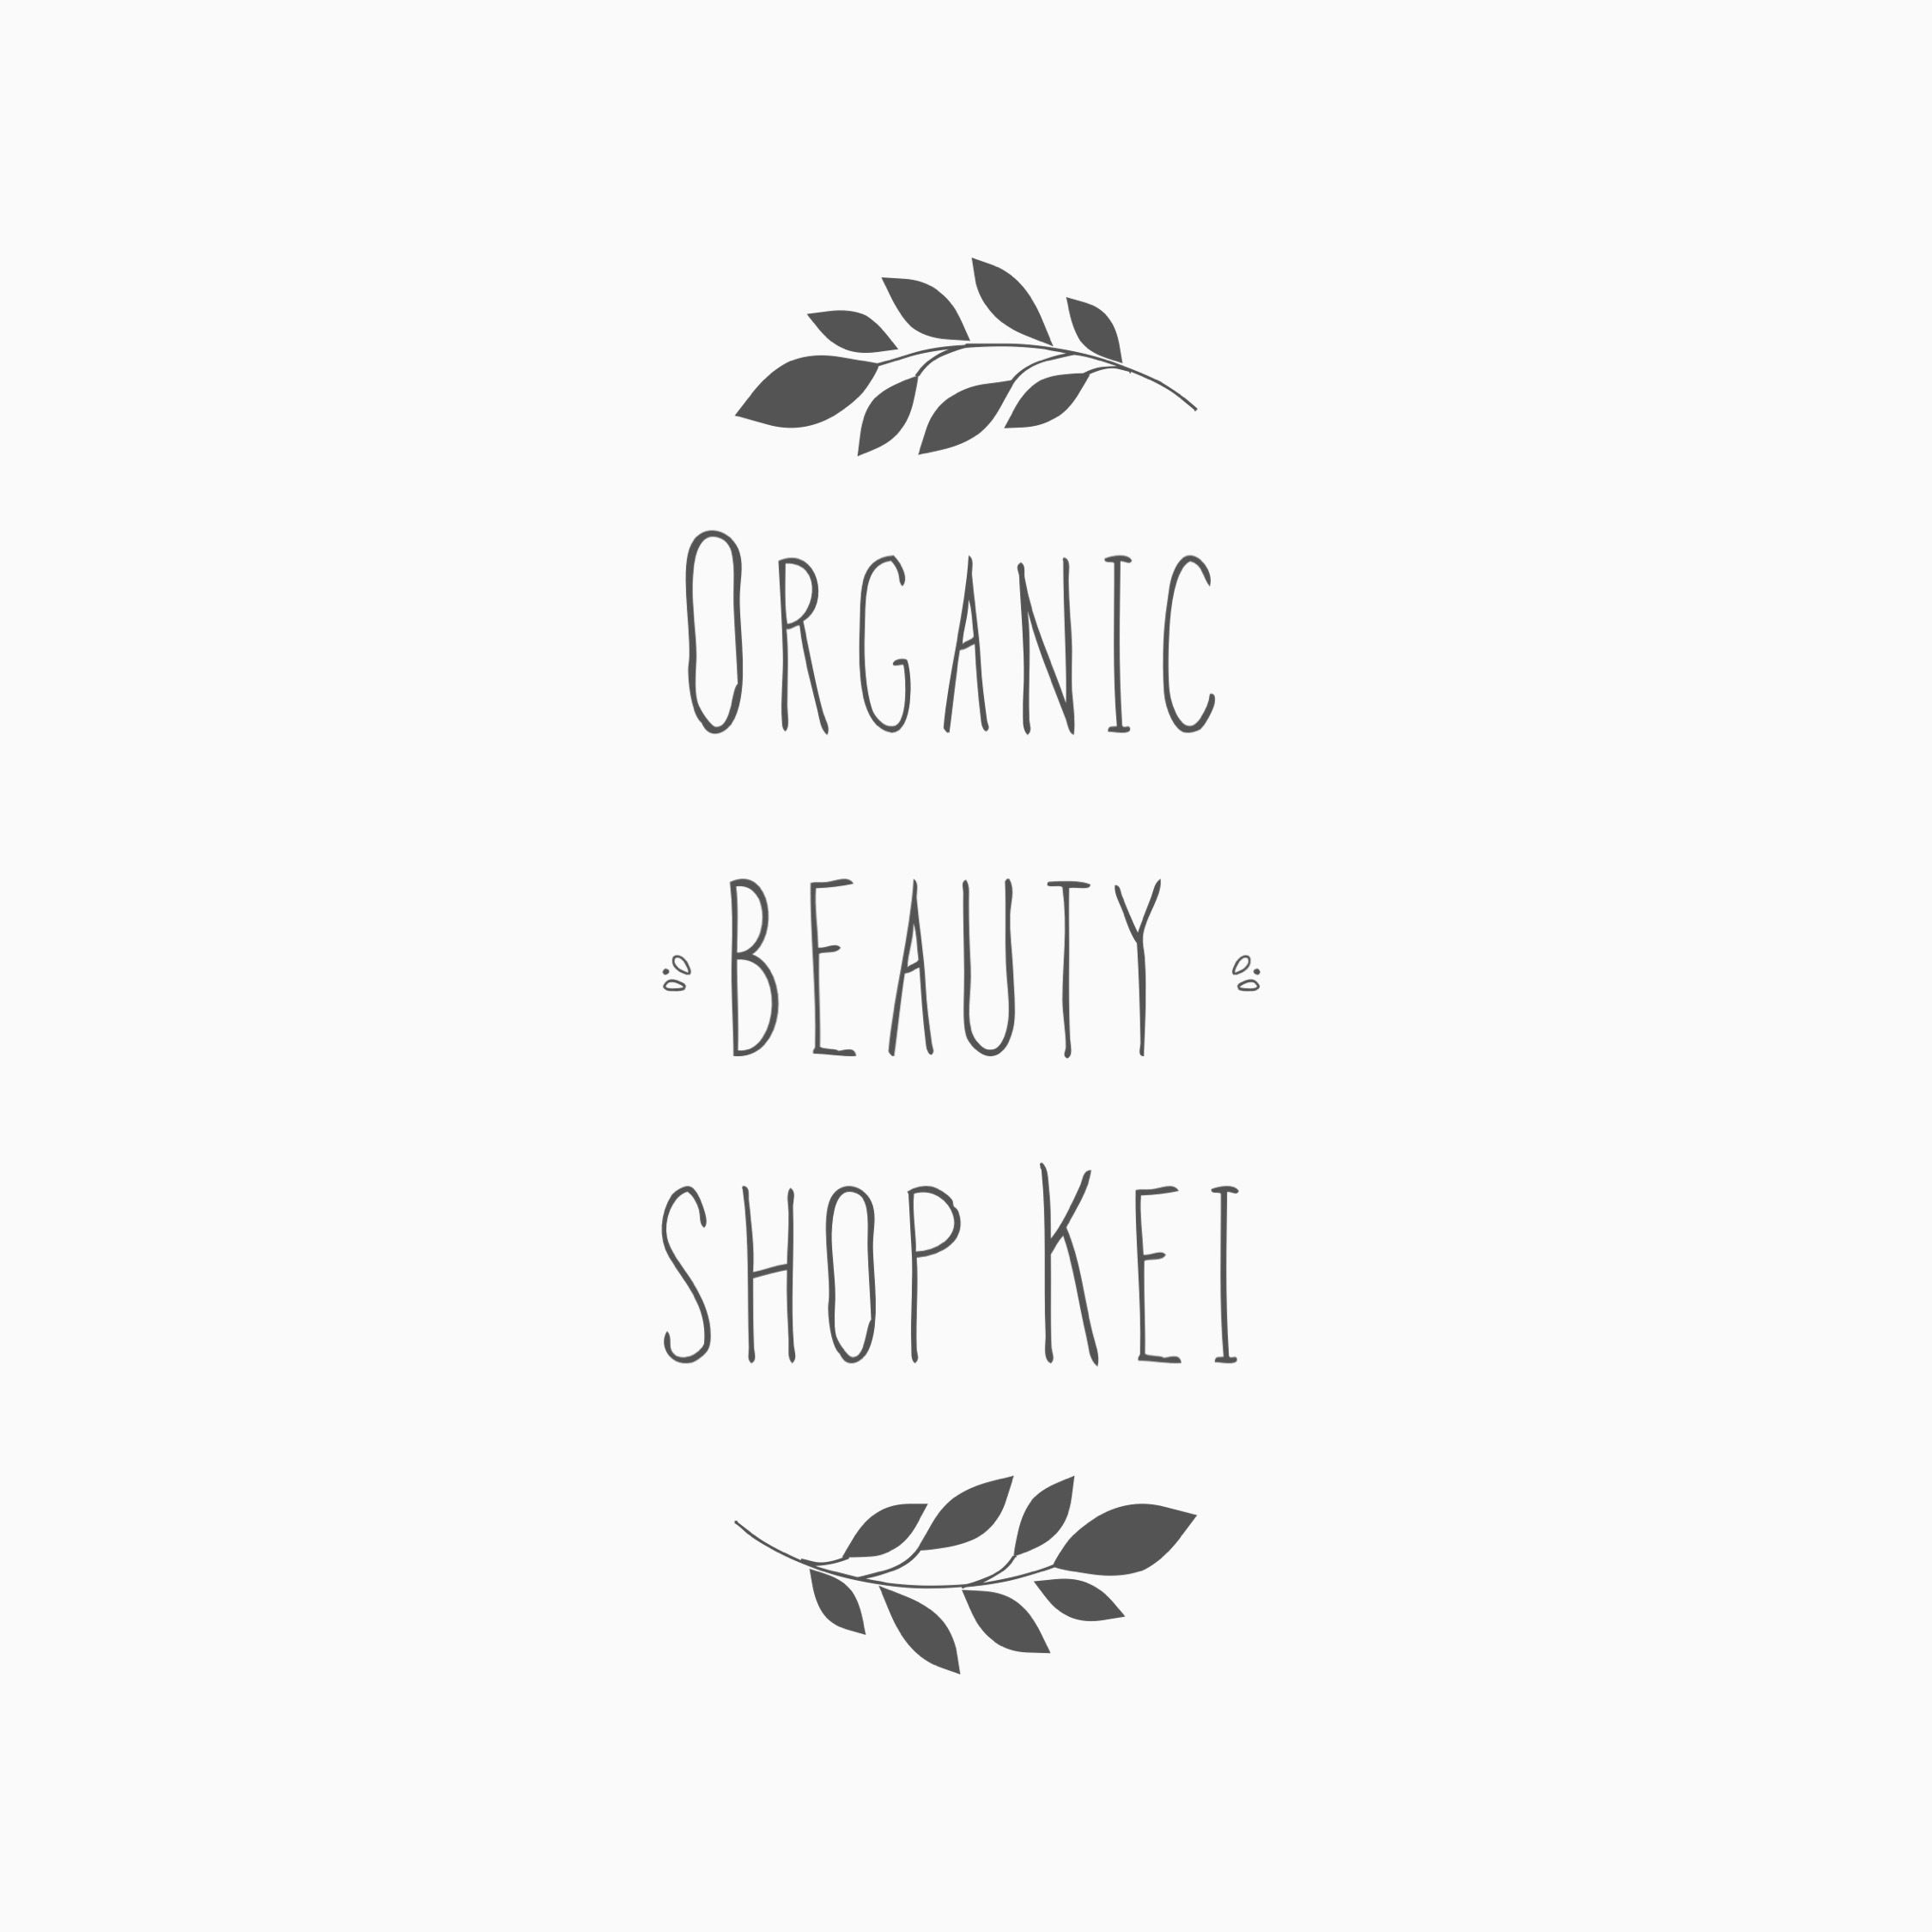 Organic beauty shop Kei